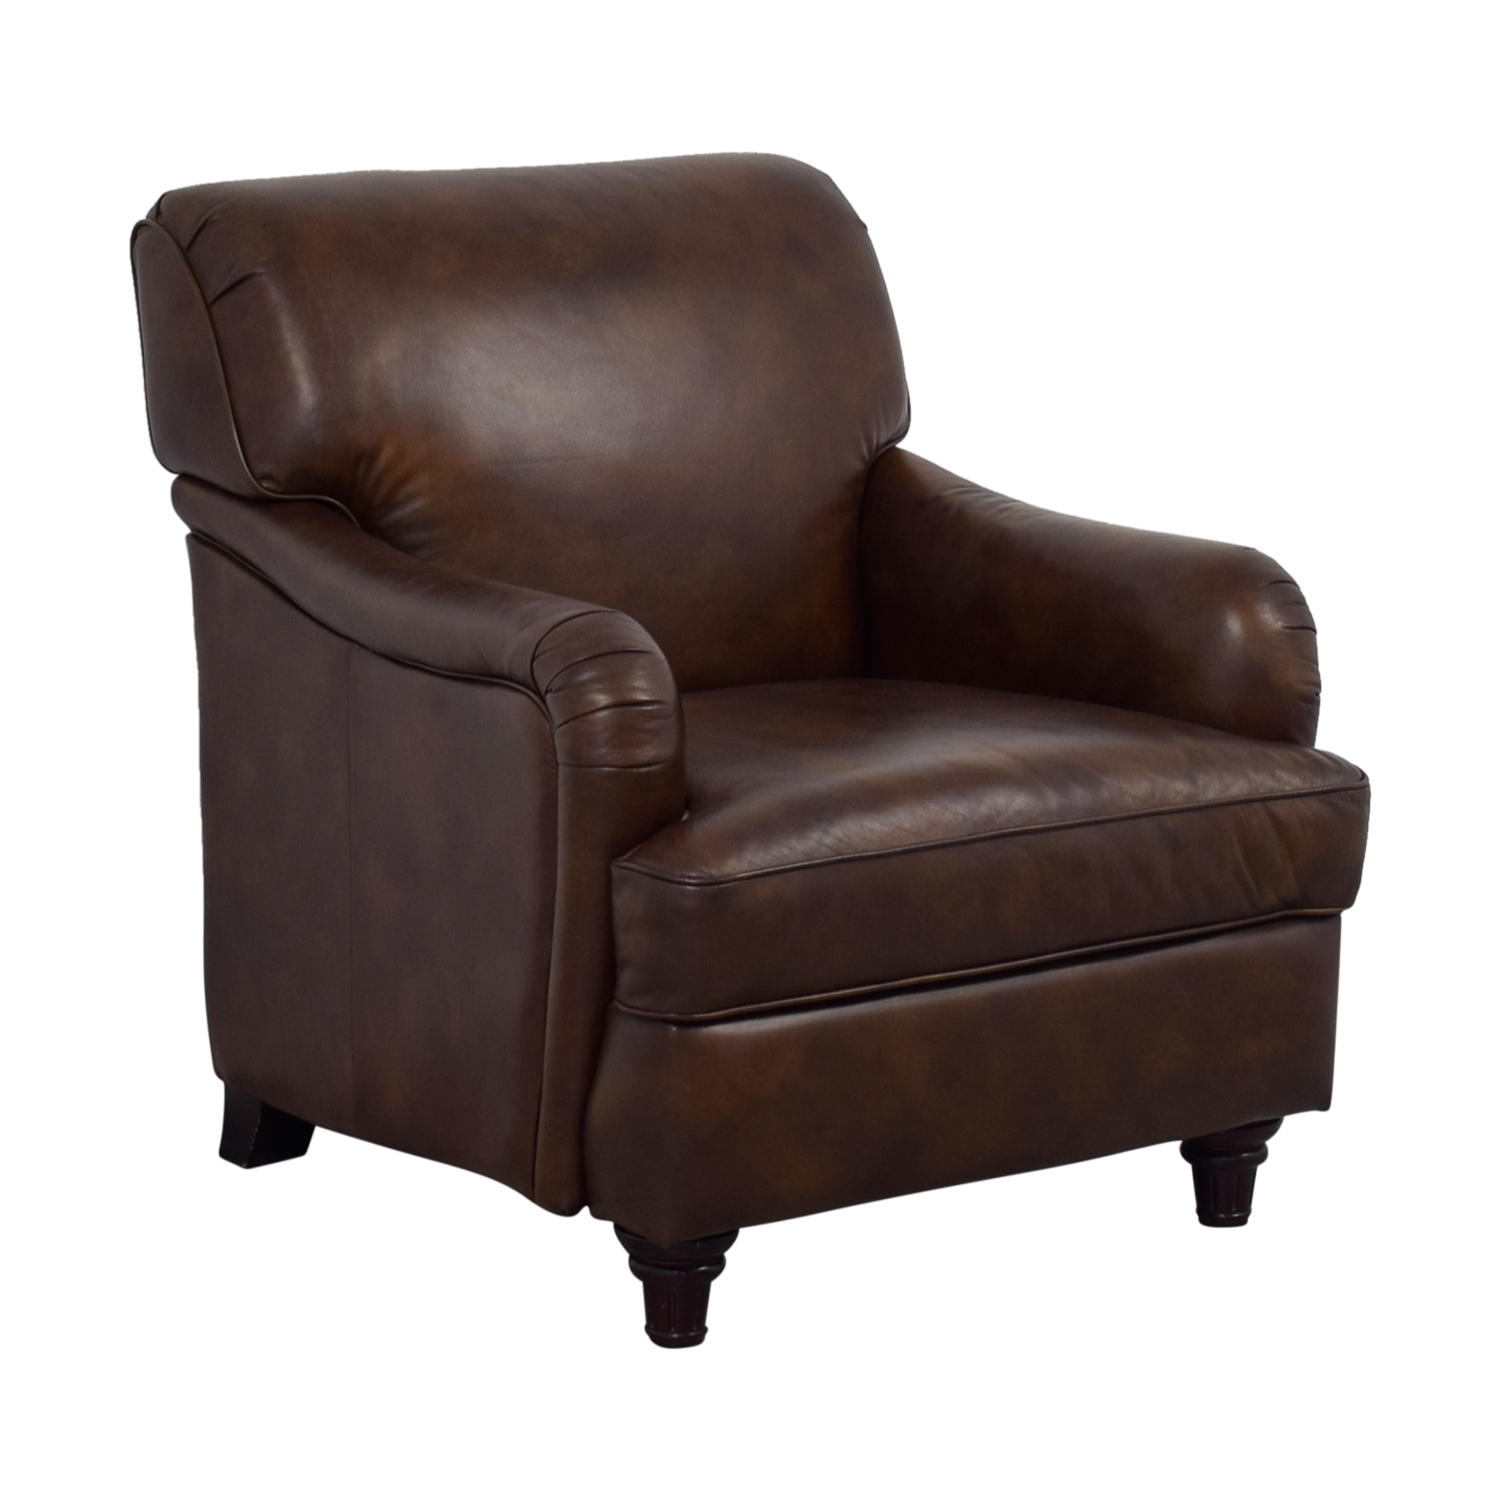 79 Off Lane Furniture Lane Leather Chair And Ottoman